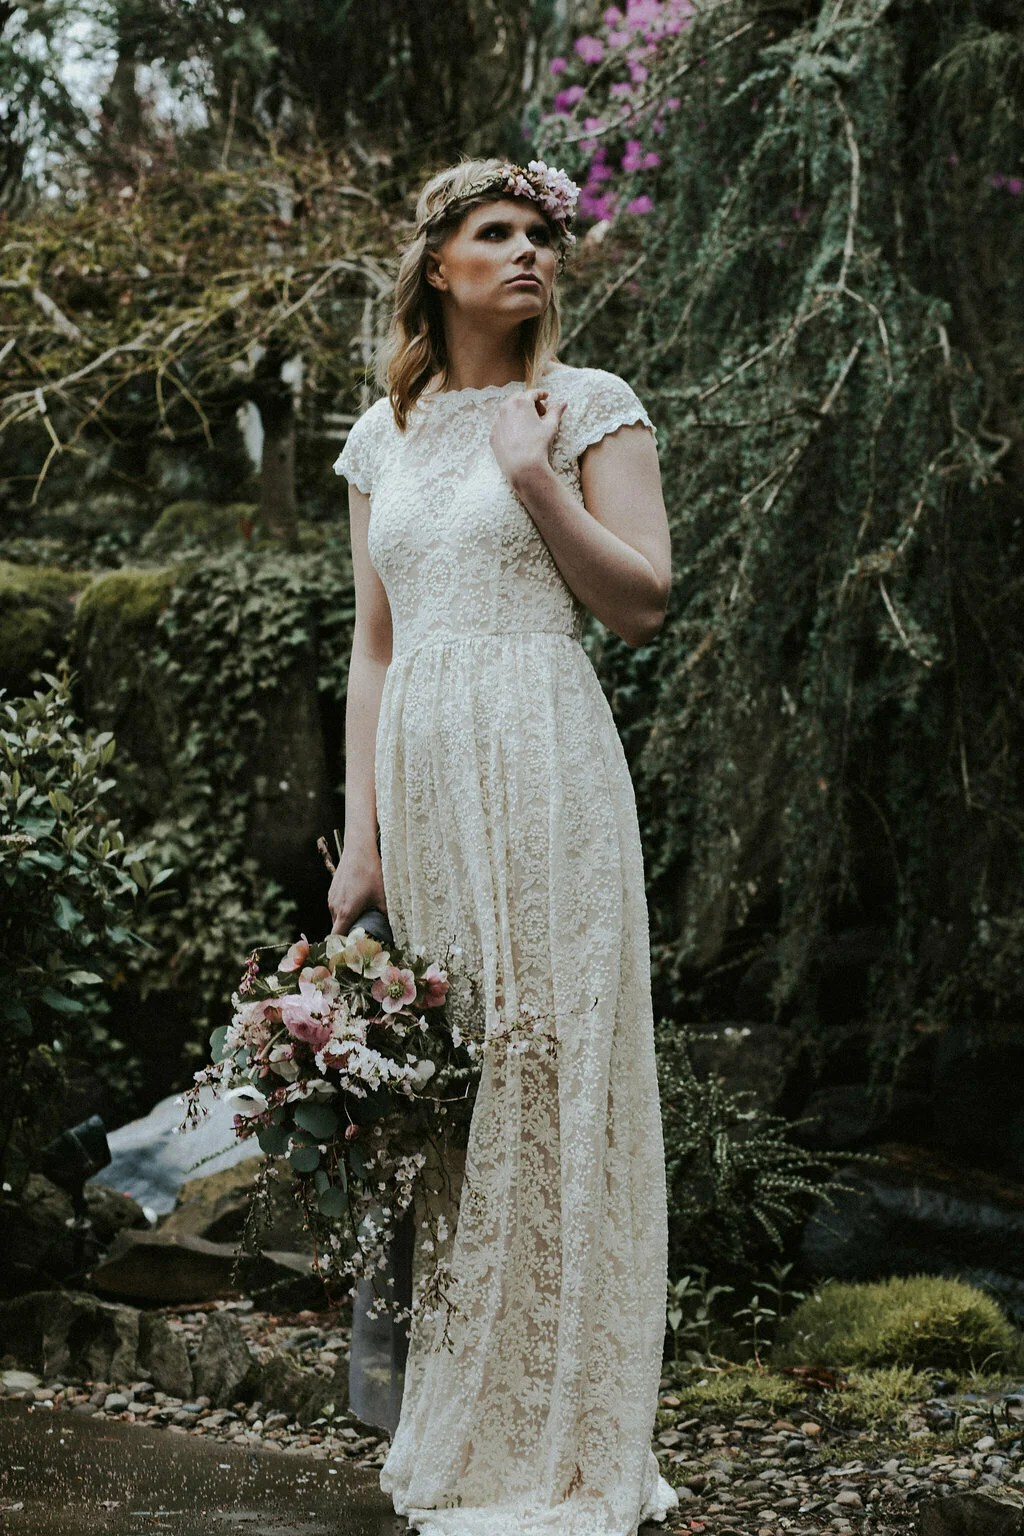 catherine backless simple lace wedding dress simple bohemian wedding dresses dreamers and lovers embroidered lace wedding dress with